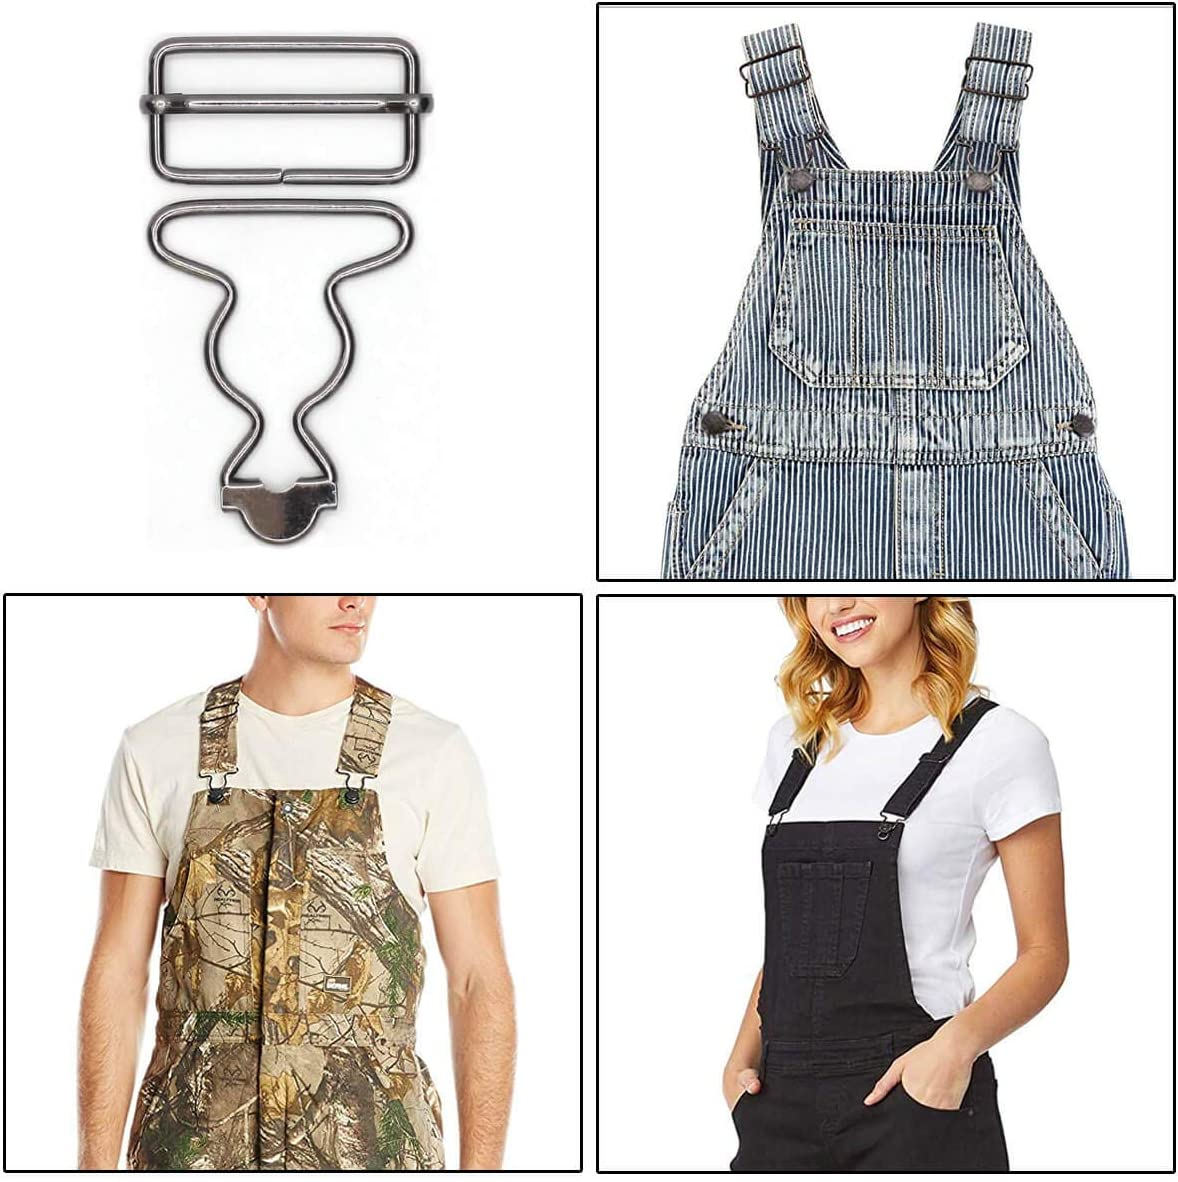 Enosea 6 Sets Overall Buckles Replacement Dungaree Fastener Suspender Buckle with Slider 1.5 inch